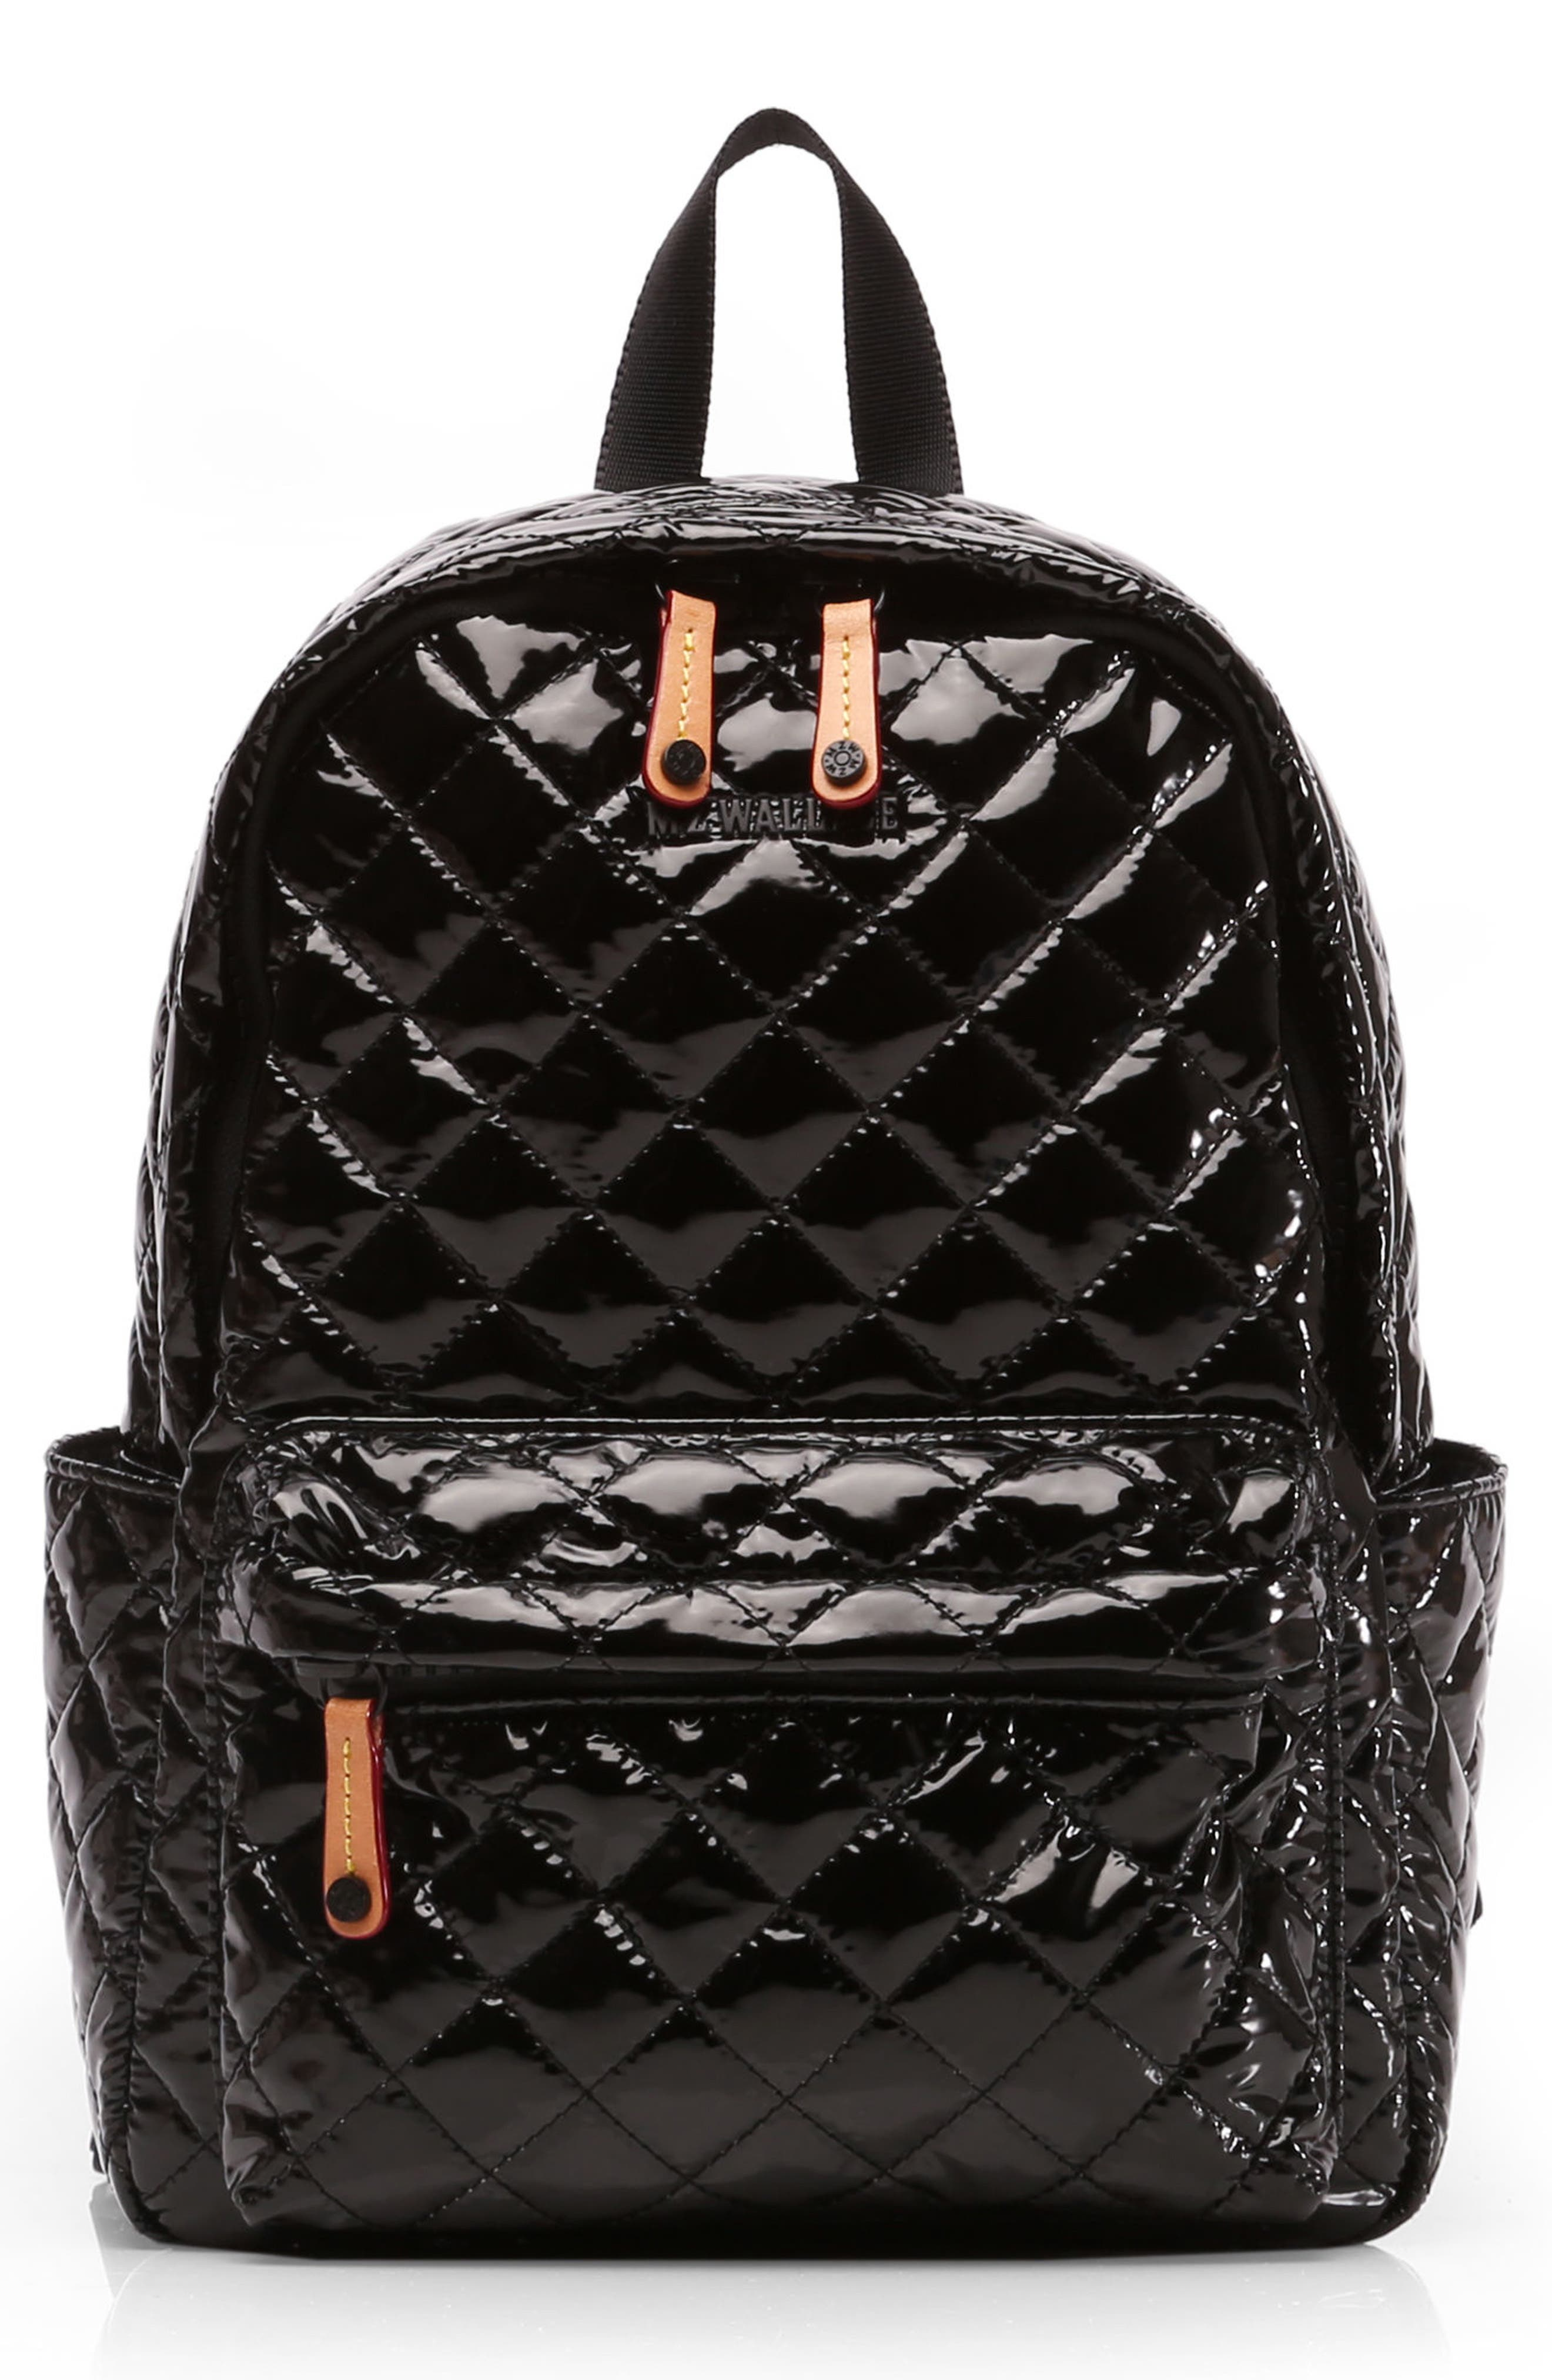 Small Metro Backpack,                         Main,                         color, Black Lacquer